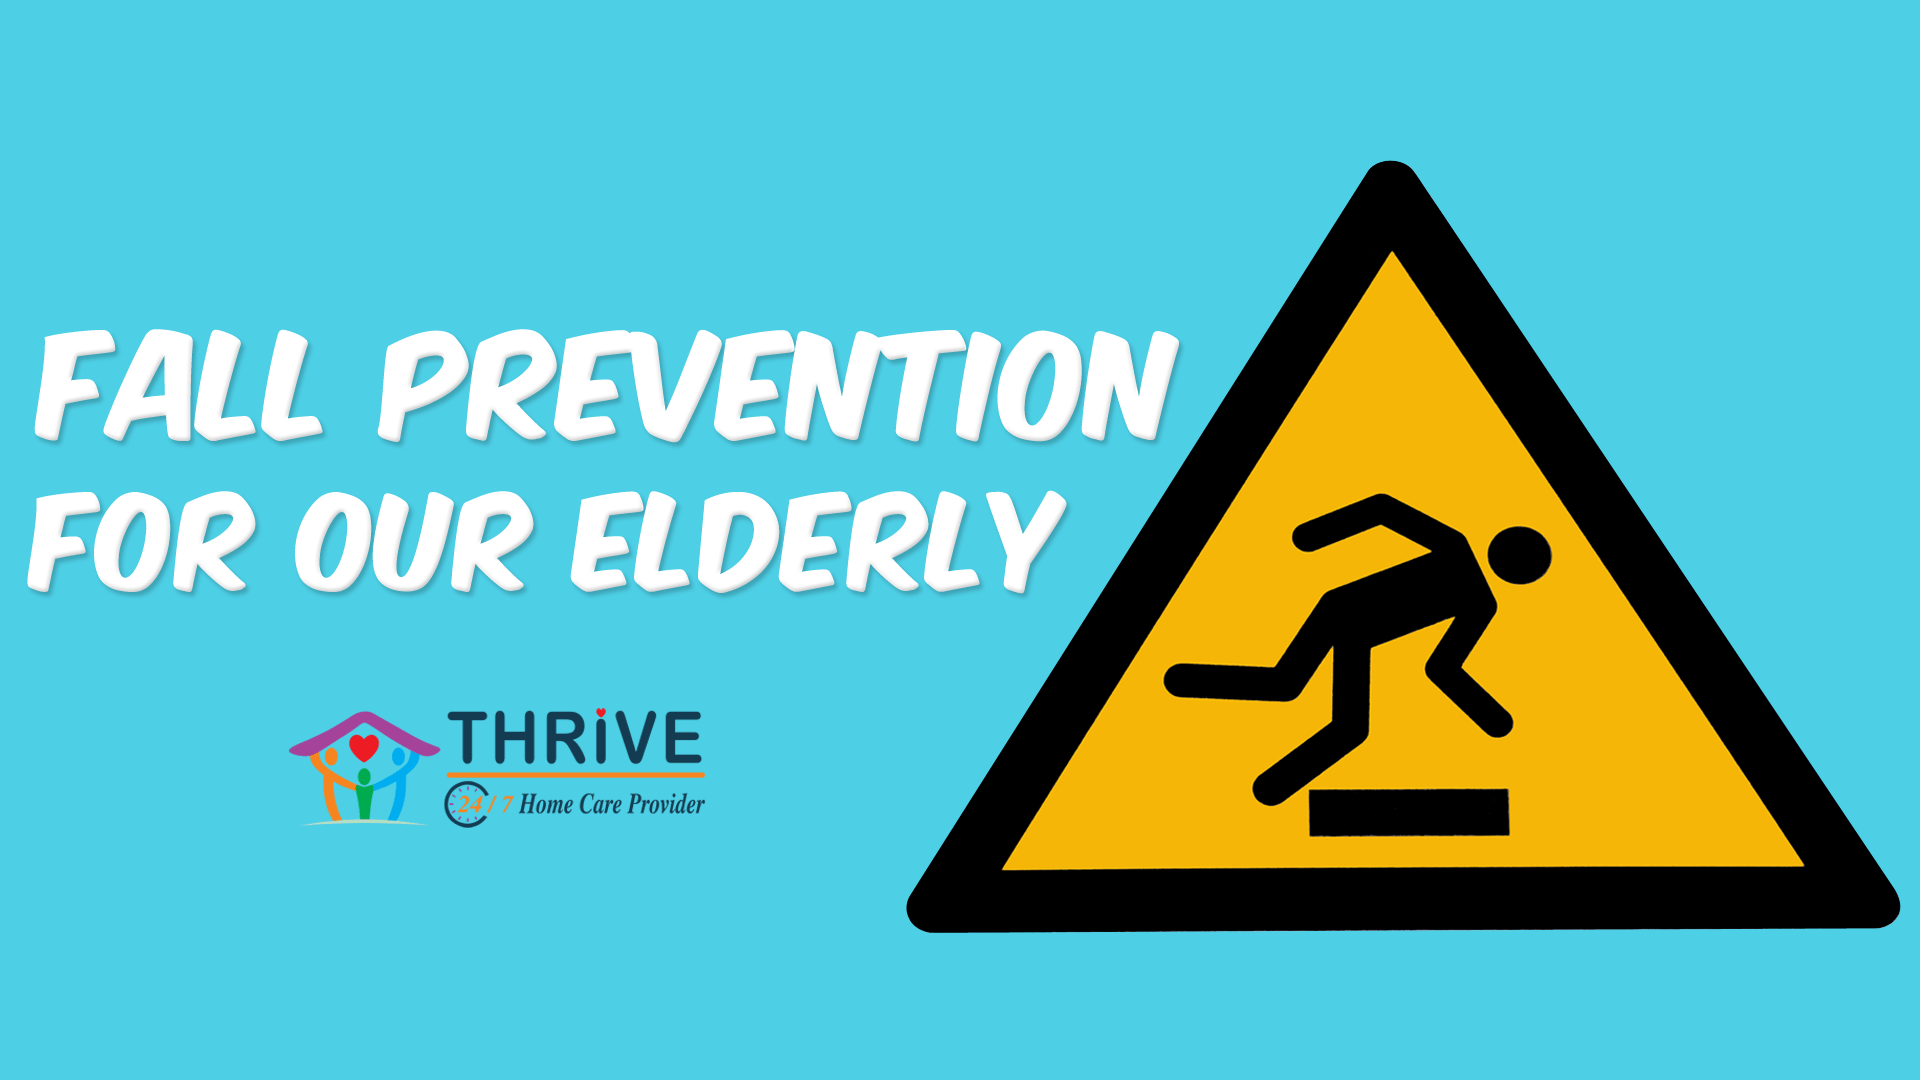 Fall Prevention For Our Elderly Featured Image